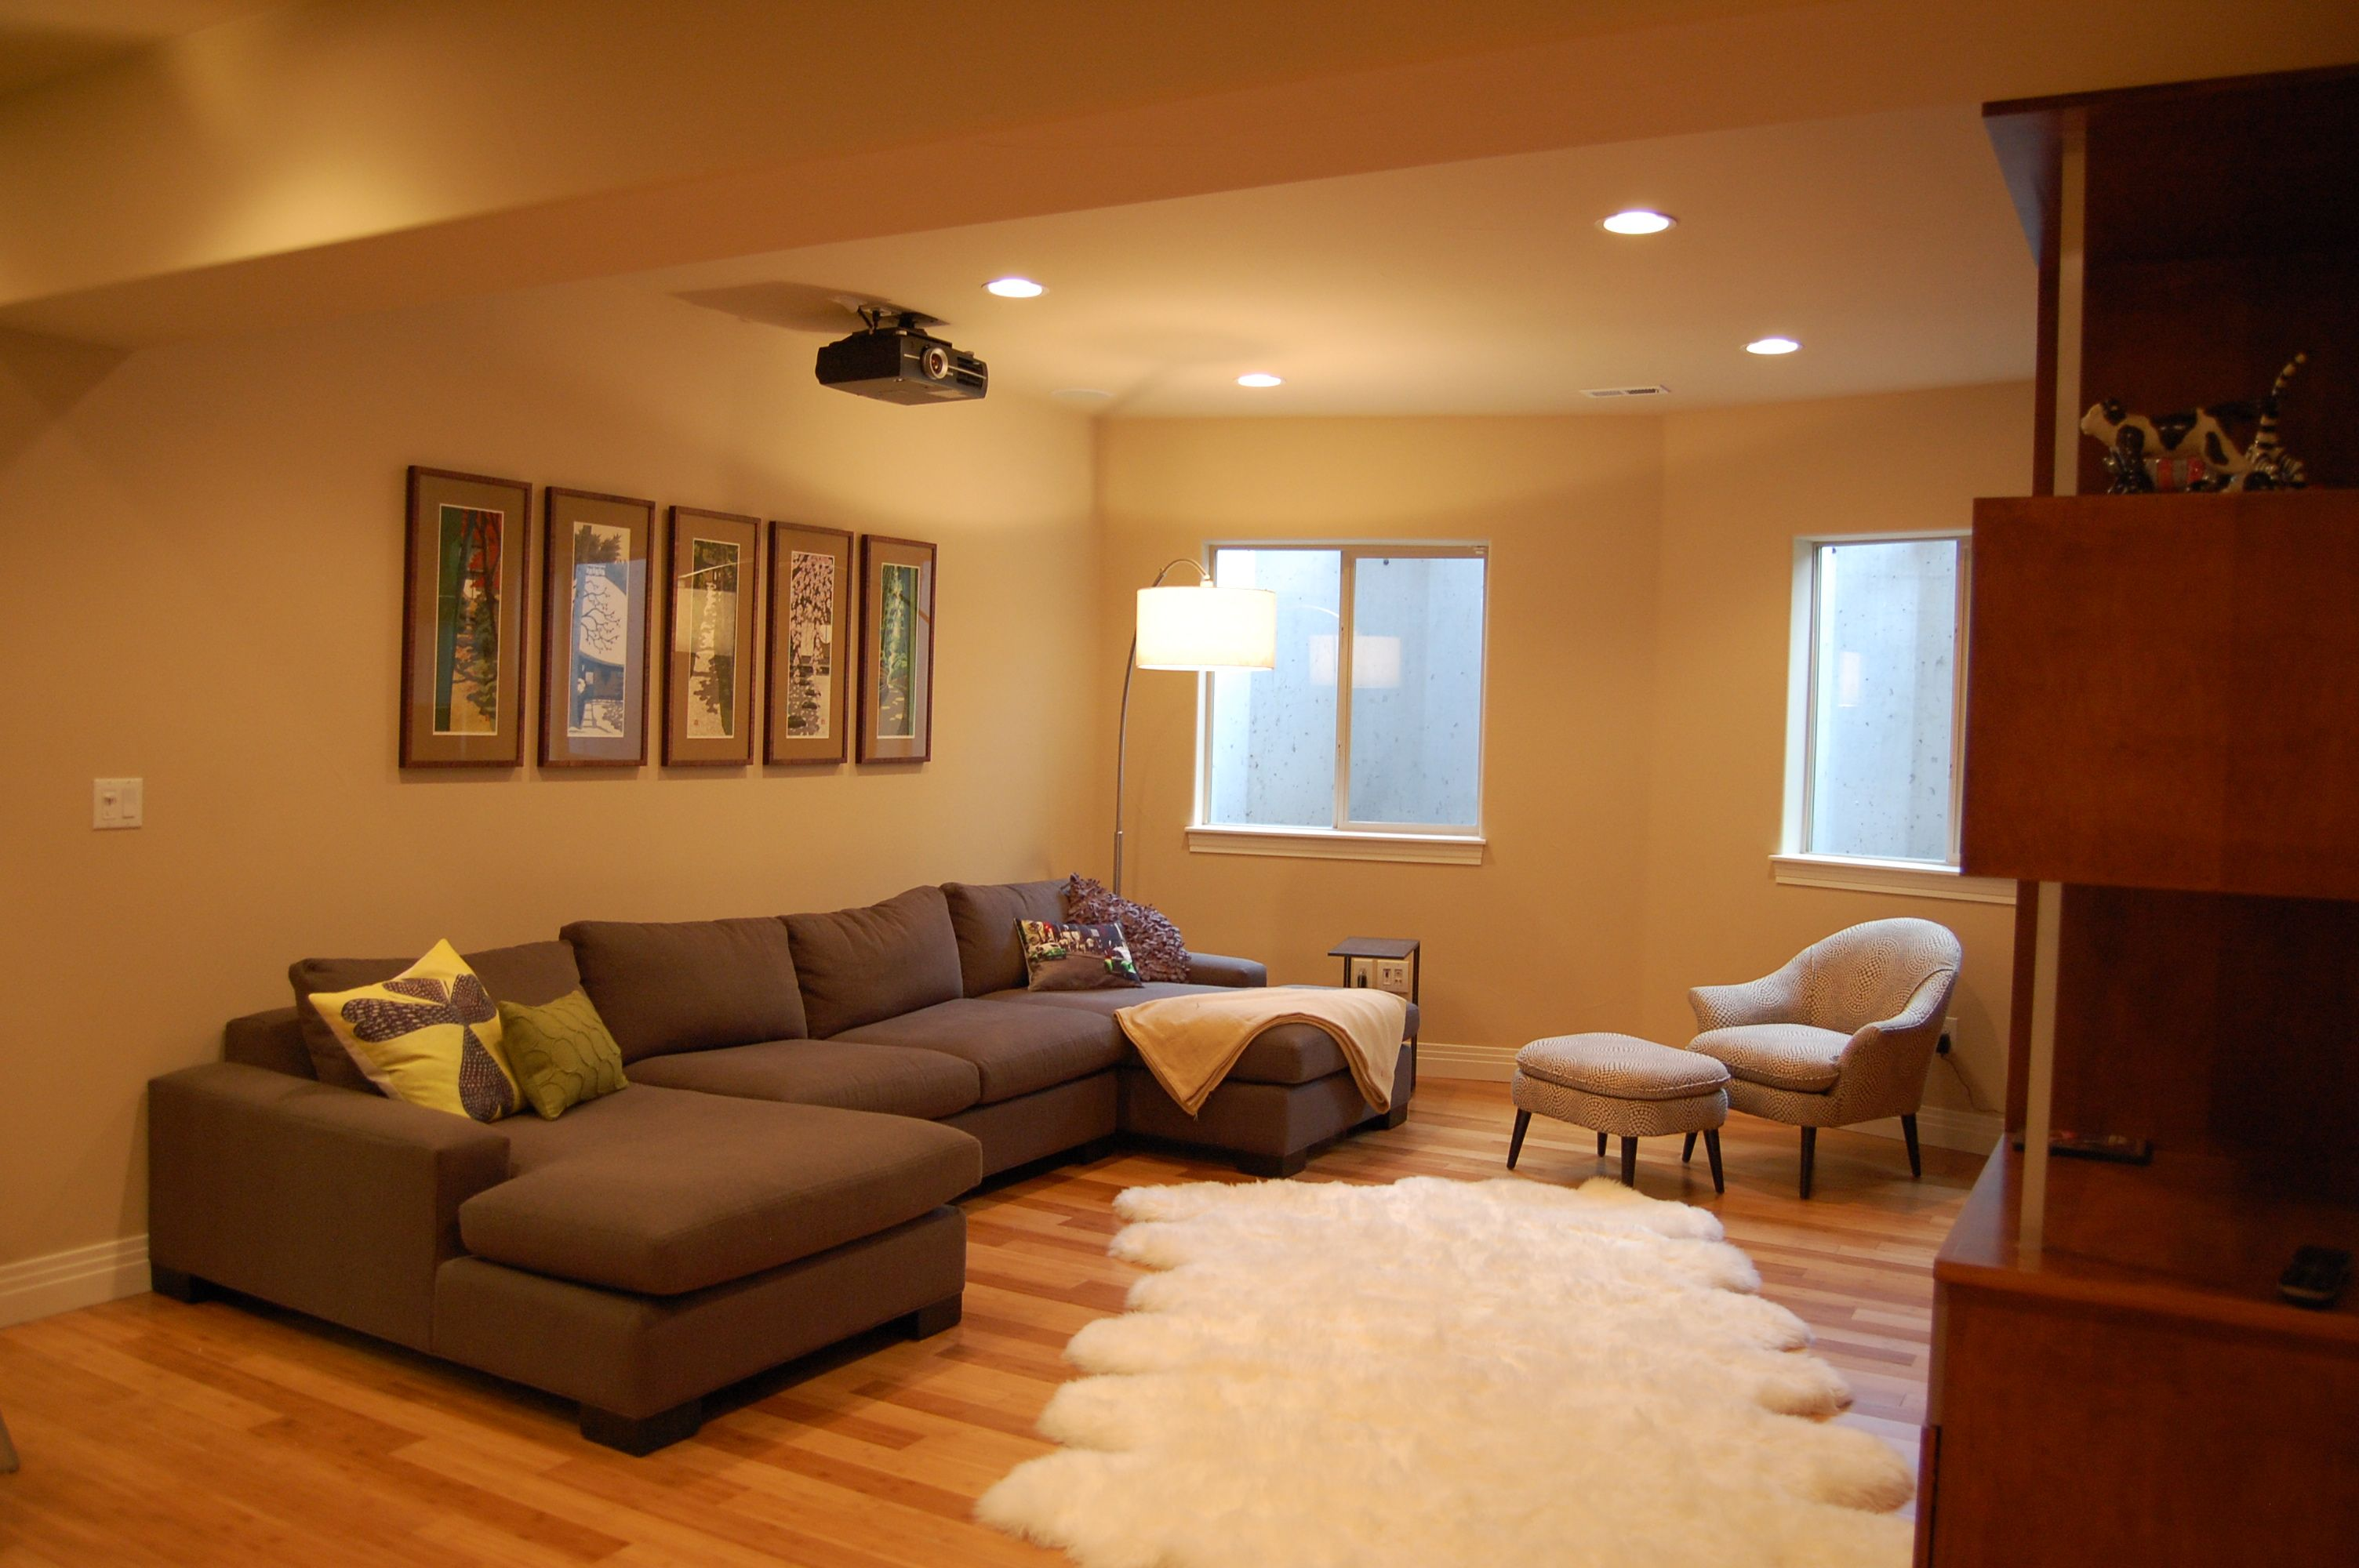 Basement Living Room Designs Unique 23 Most Popular Small Basement Ideas Decor And Remodel  Man Review